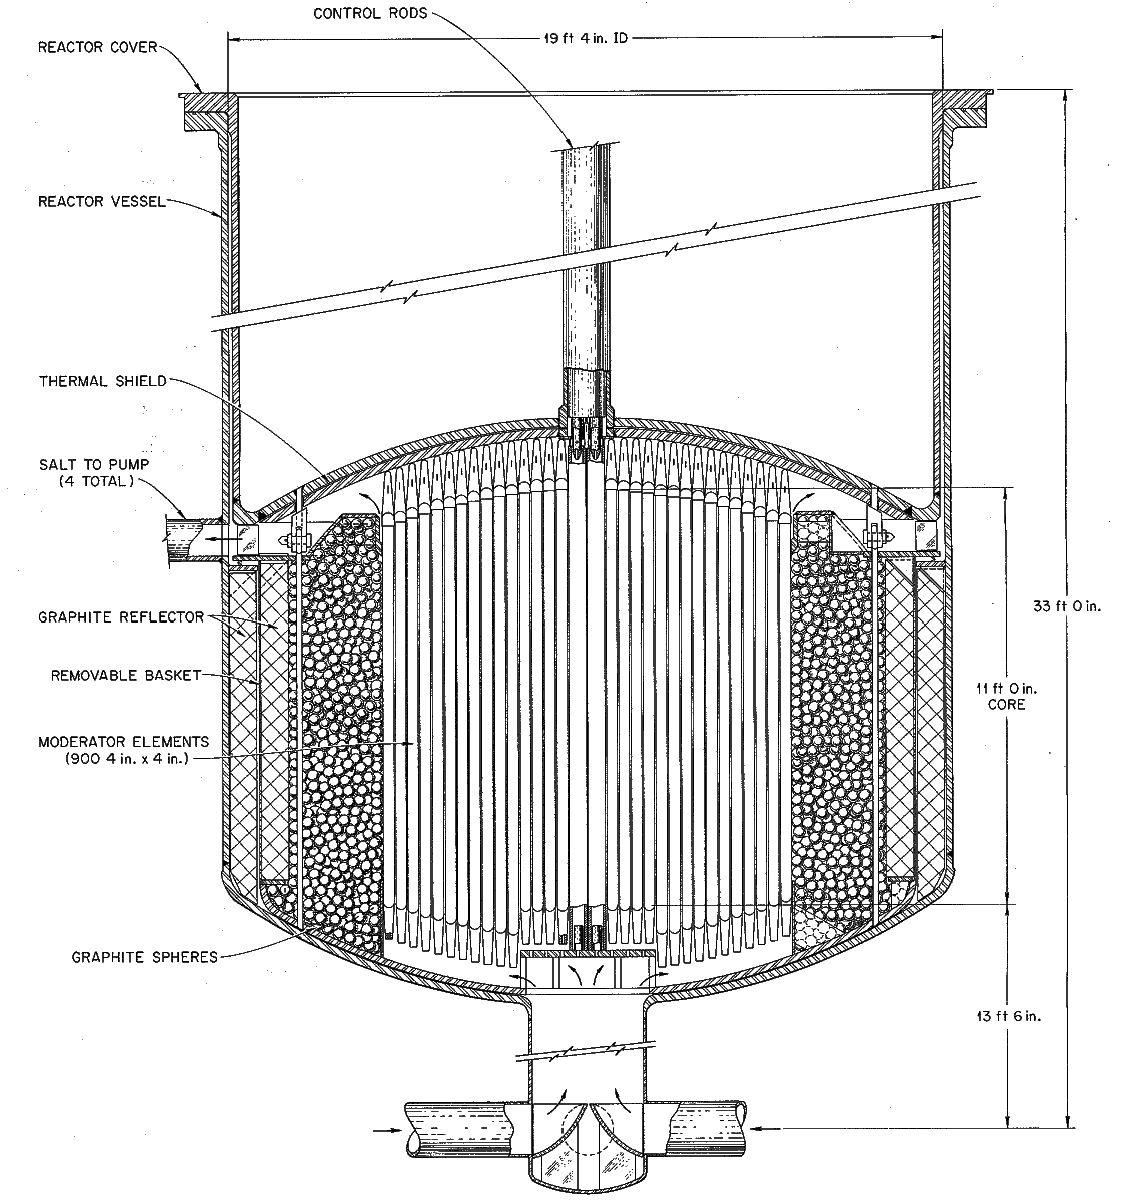 An elevation view of the reactor vessel from ORNL-4344 for a molten-salt breeder reactor. The central region consists of square graphite prisms arranged on a square pitch. The transition region of the reactor consists of a bed of graphite spheres floating in the fuel salt. The reflector consists of solid graphite wedge blocks arranged in an annular shape. From ORNL-4344, page 62.